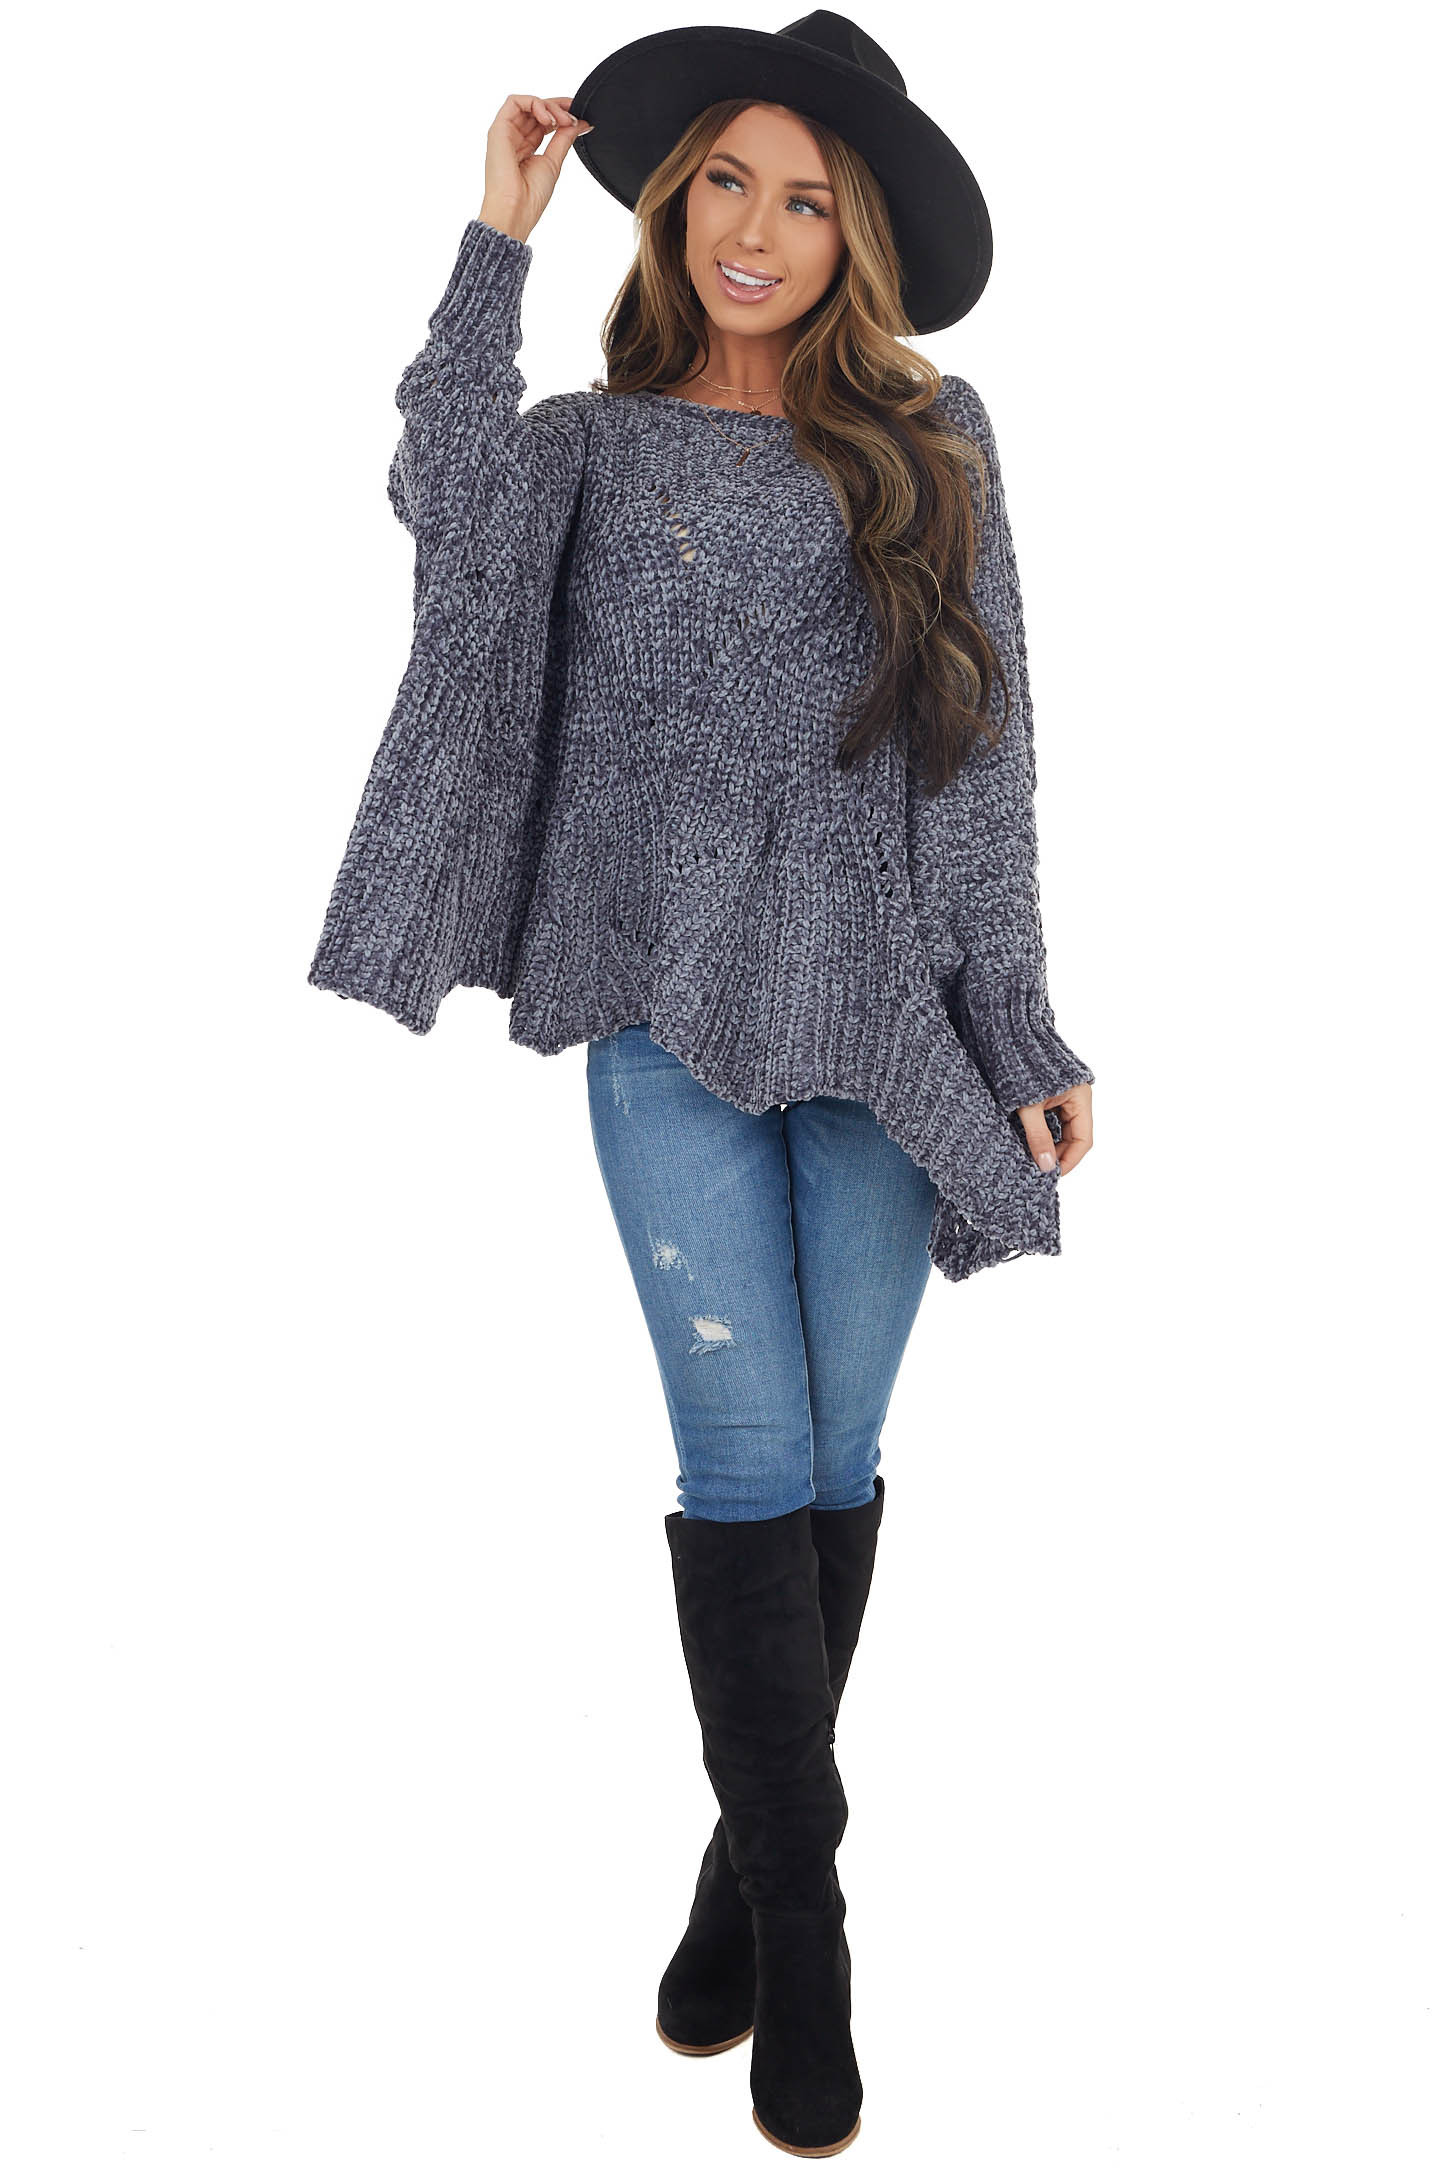 Slate Blue Chenille Knit Sweater with Long Dolman Sleeves